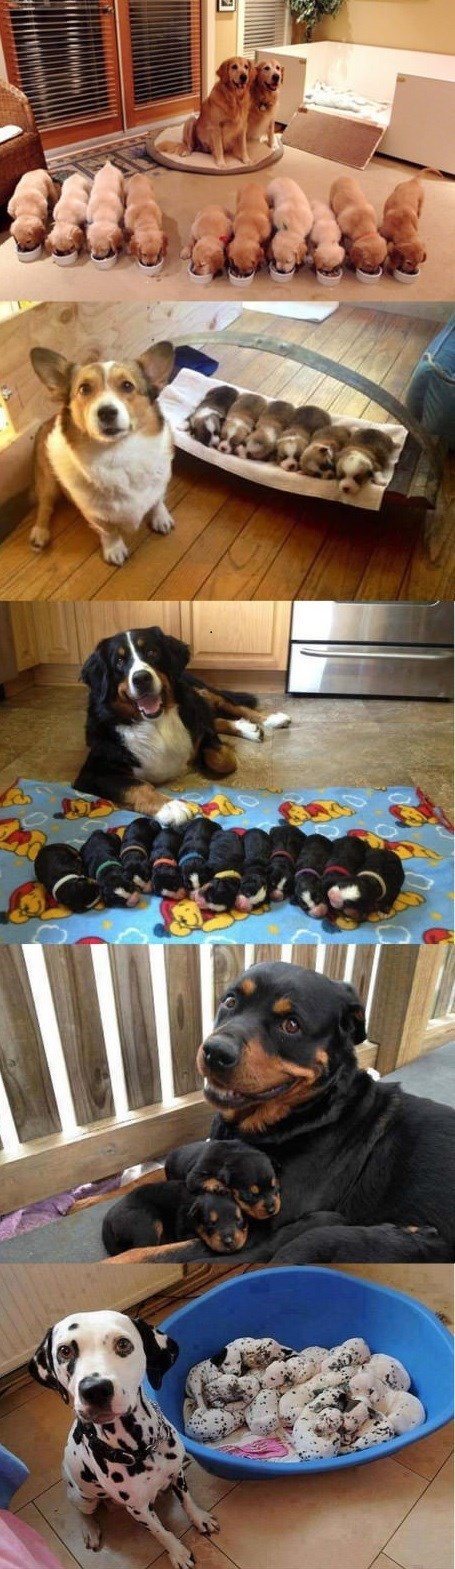 dogs puppies parenting proud family - 9000619520